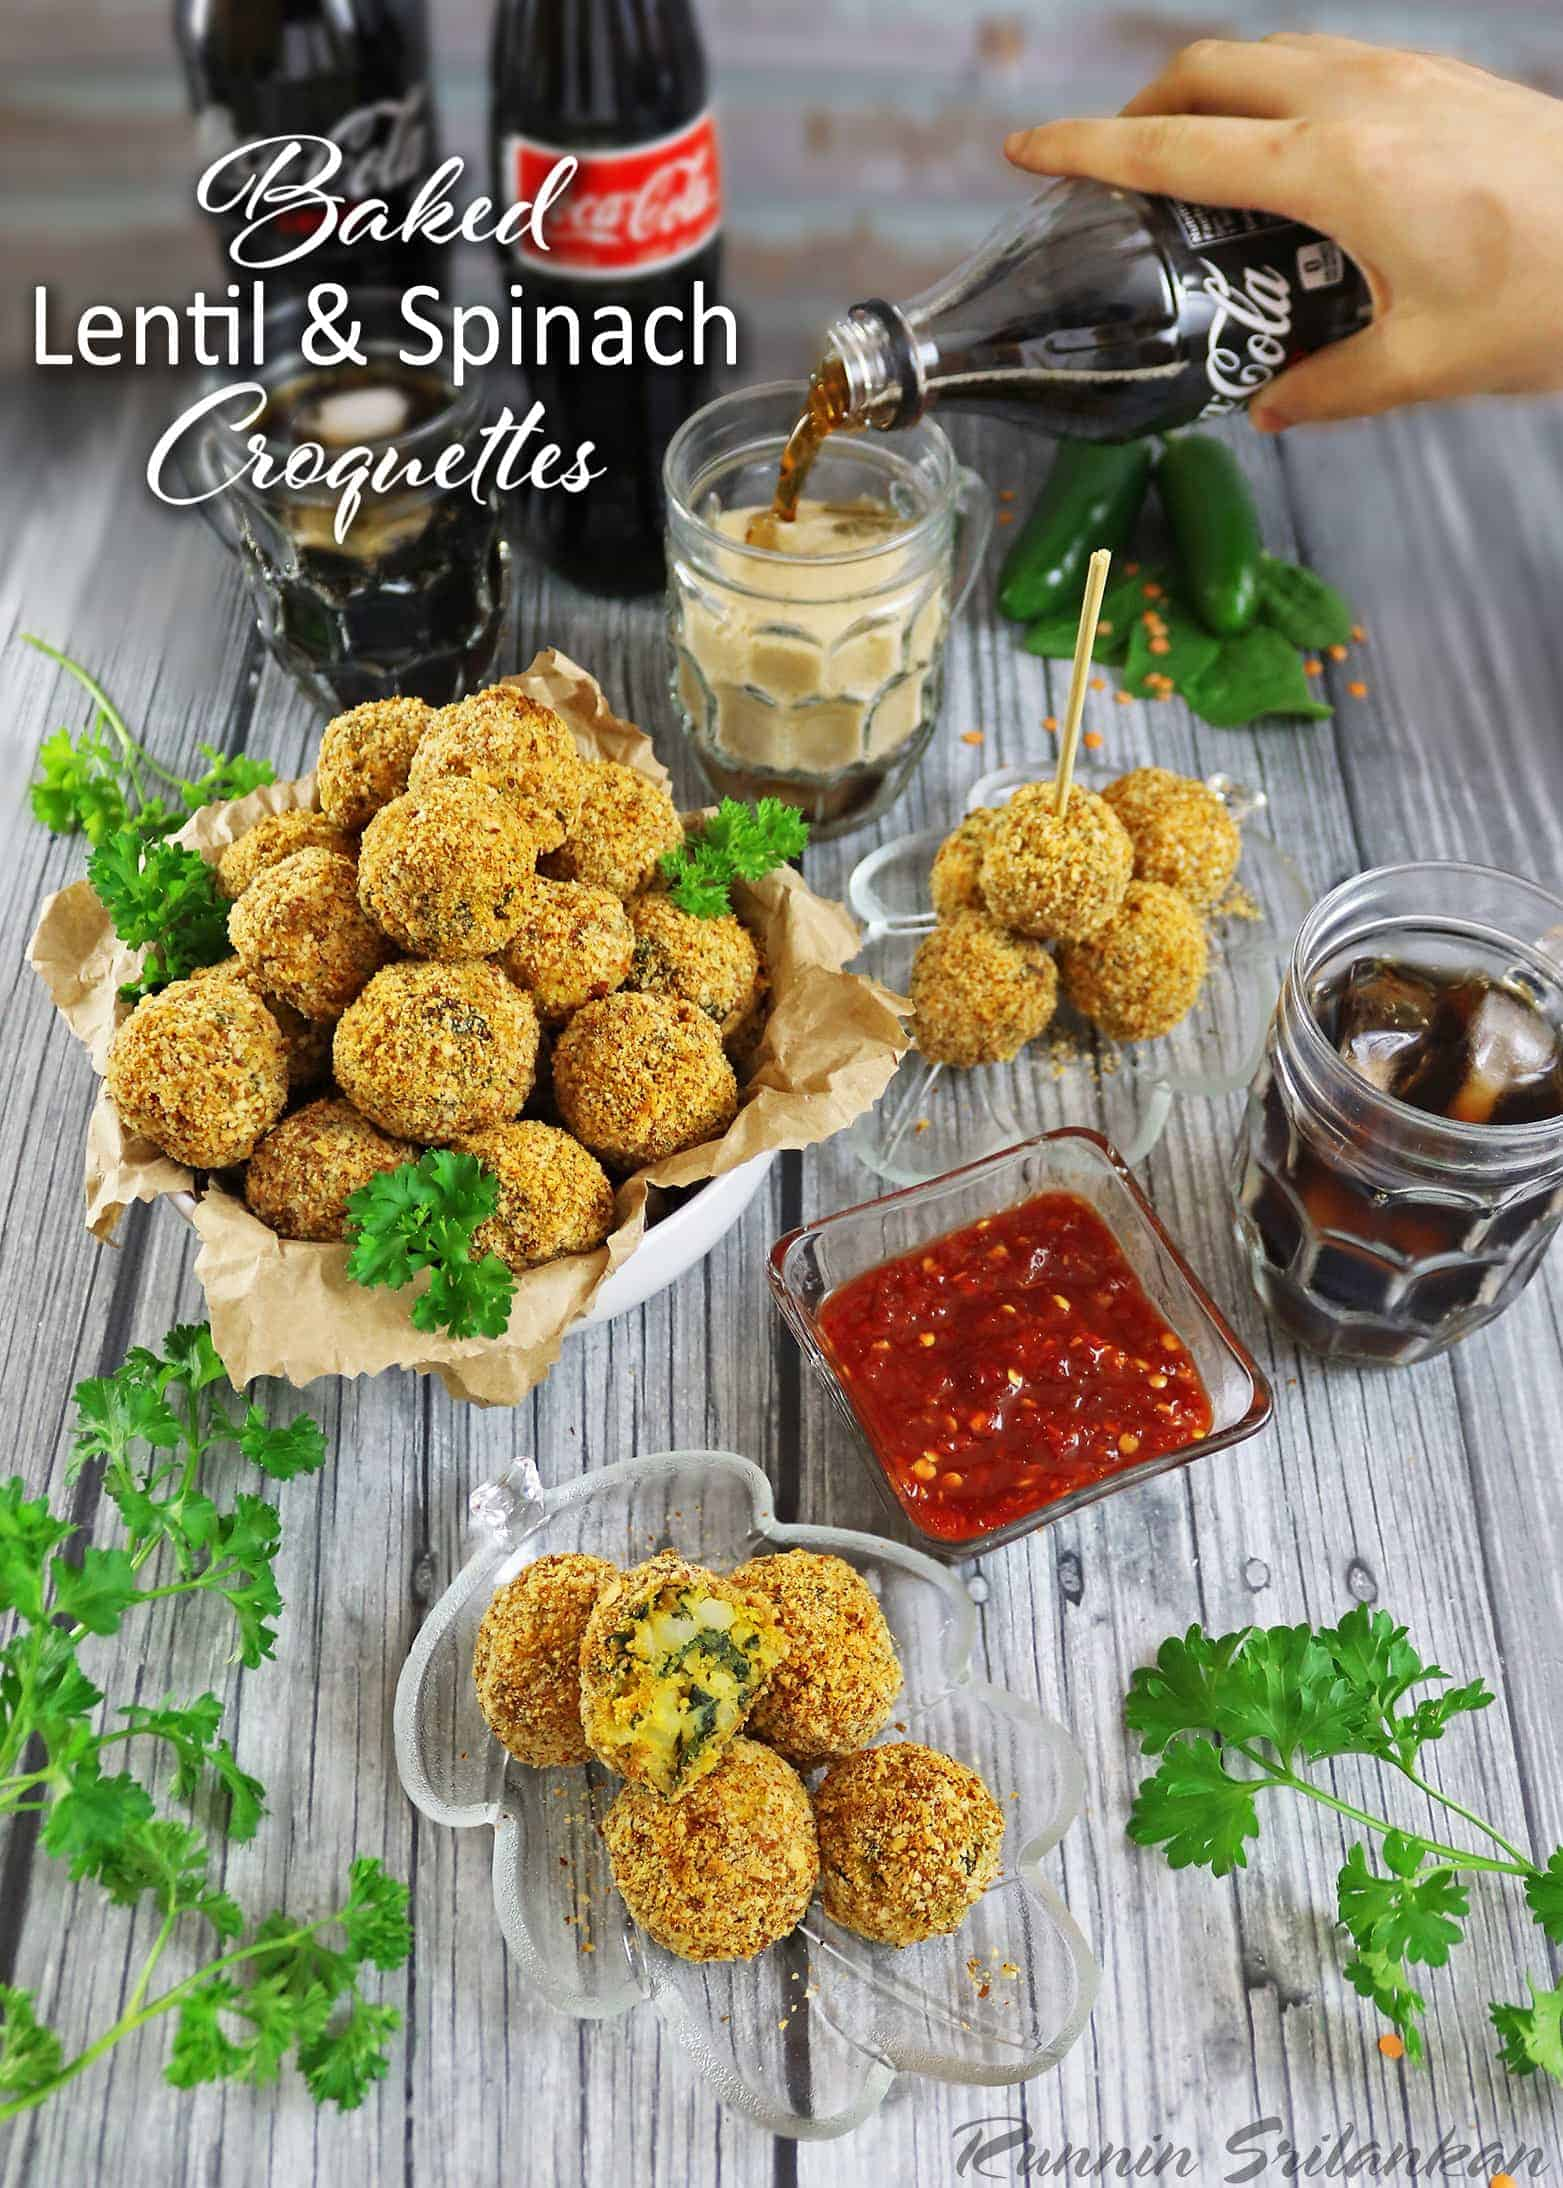 Baked Lentil Spinach Croquettes